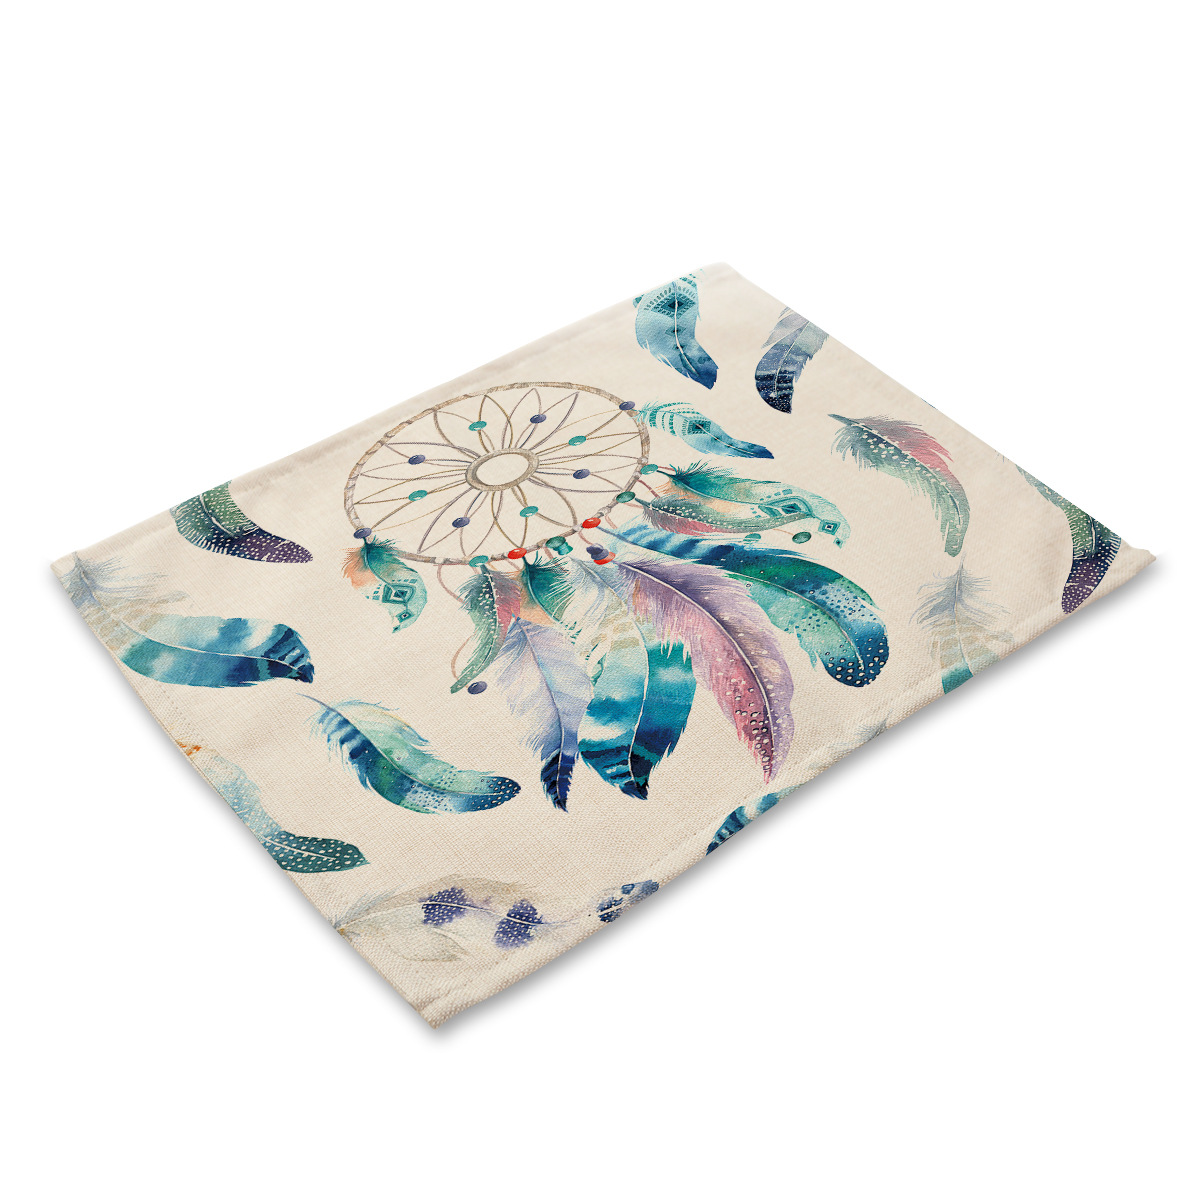 Dreamcatcher Feathers Cloth Placemats Waterproof Insulation Pad Coaster Kitchen Mat Decorative Table Decoration Accessories in Tablecloths from Home Garden